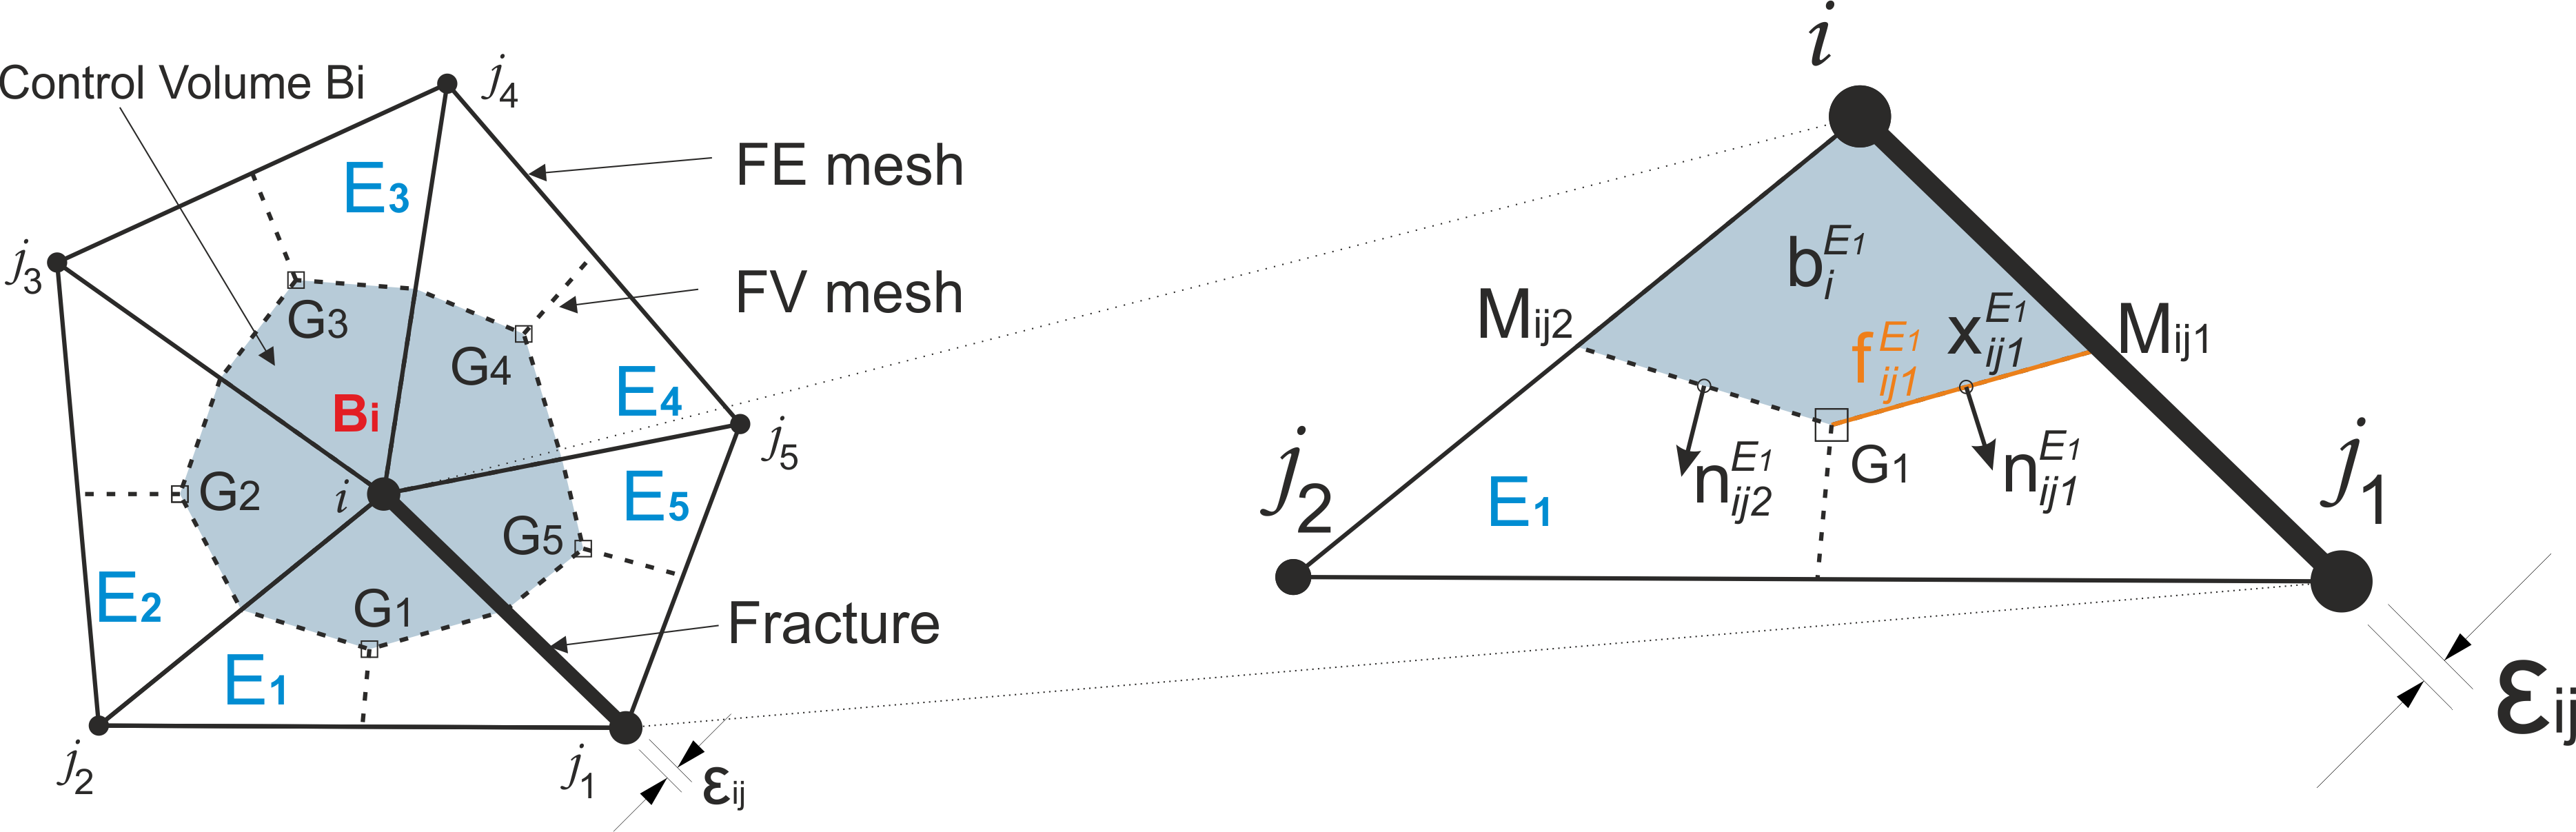 Conceptual representation of the Box-DFM method: (left-hand side) The dual finite element and finite volume mesh from which the control volume